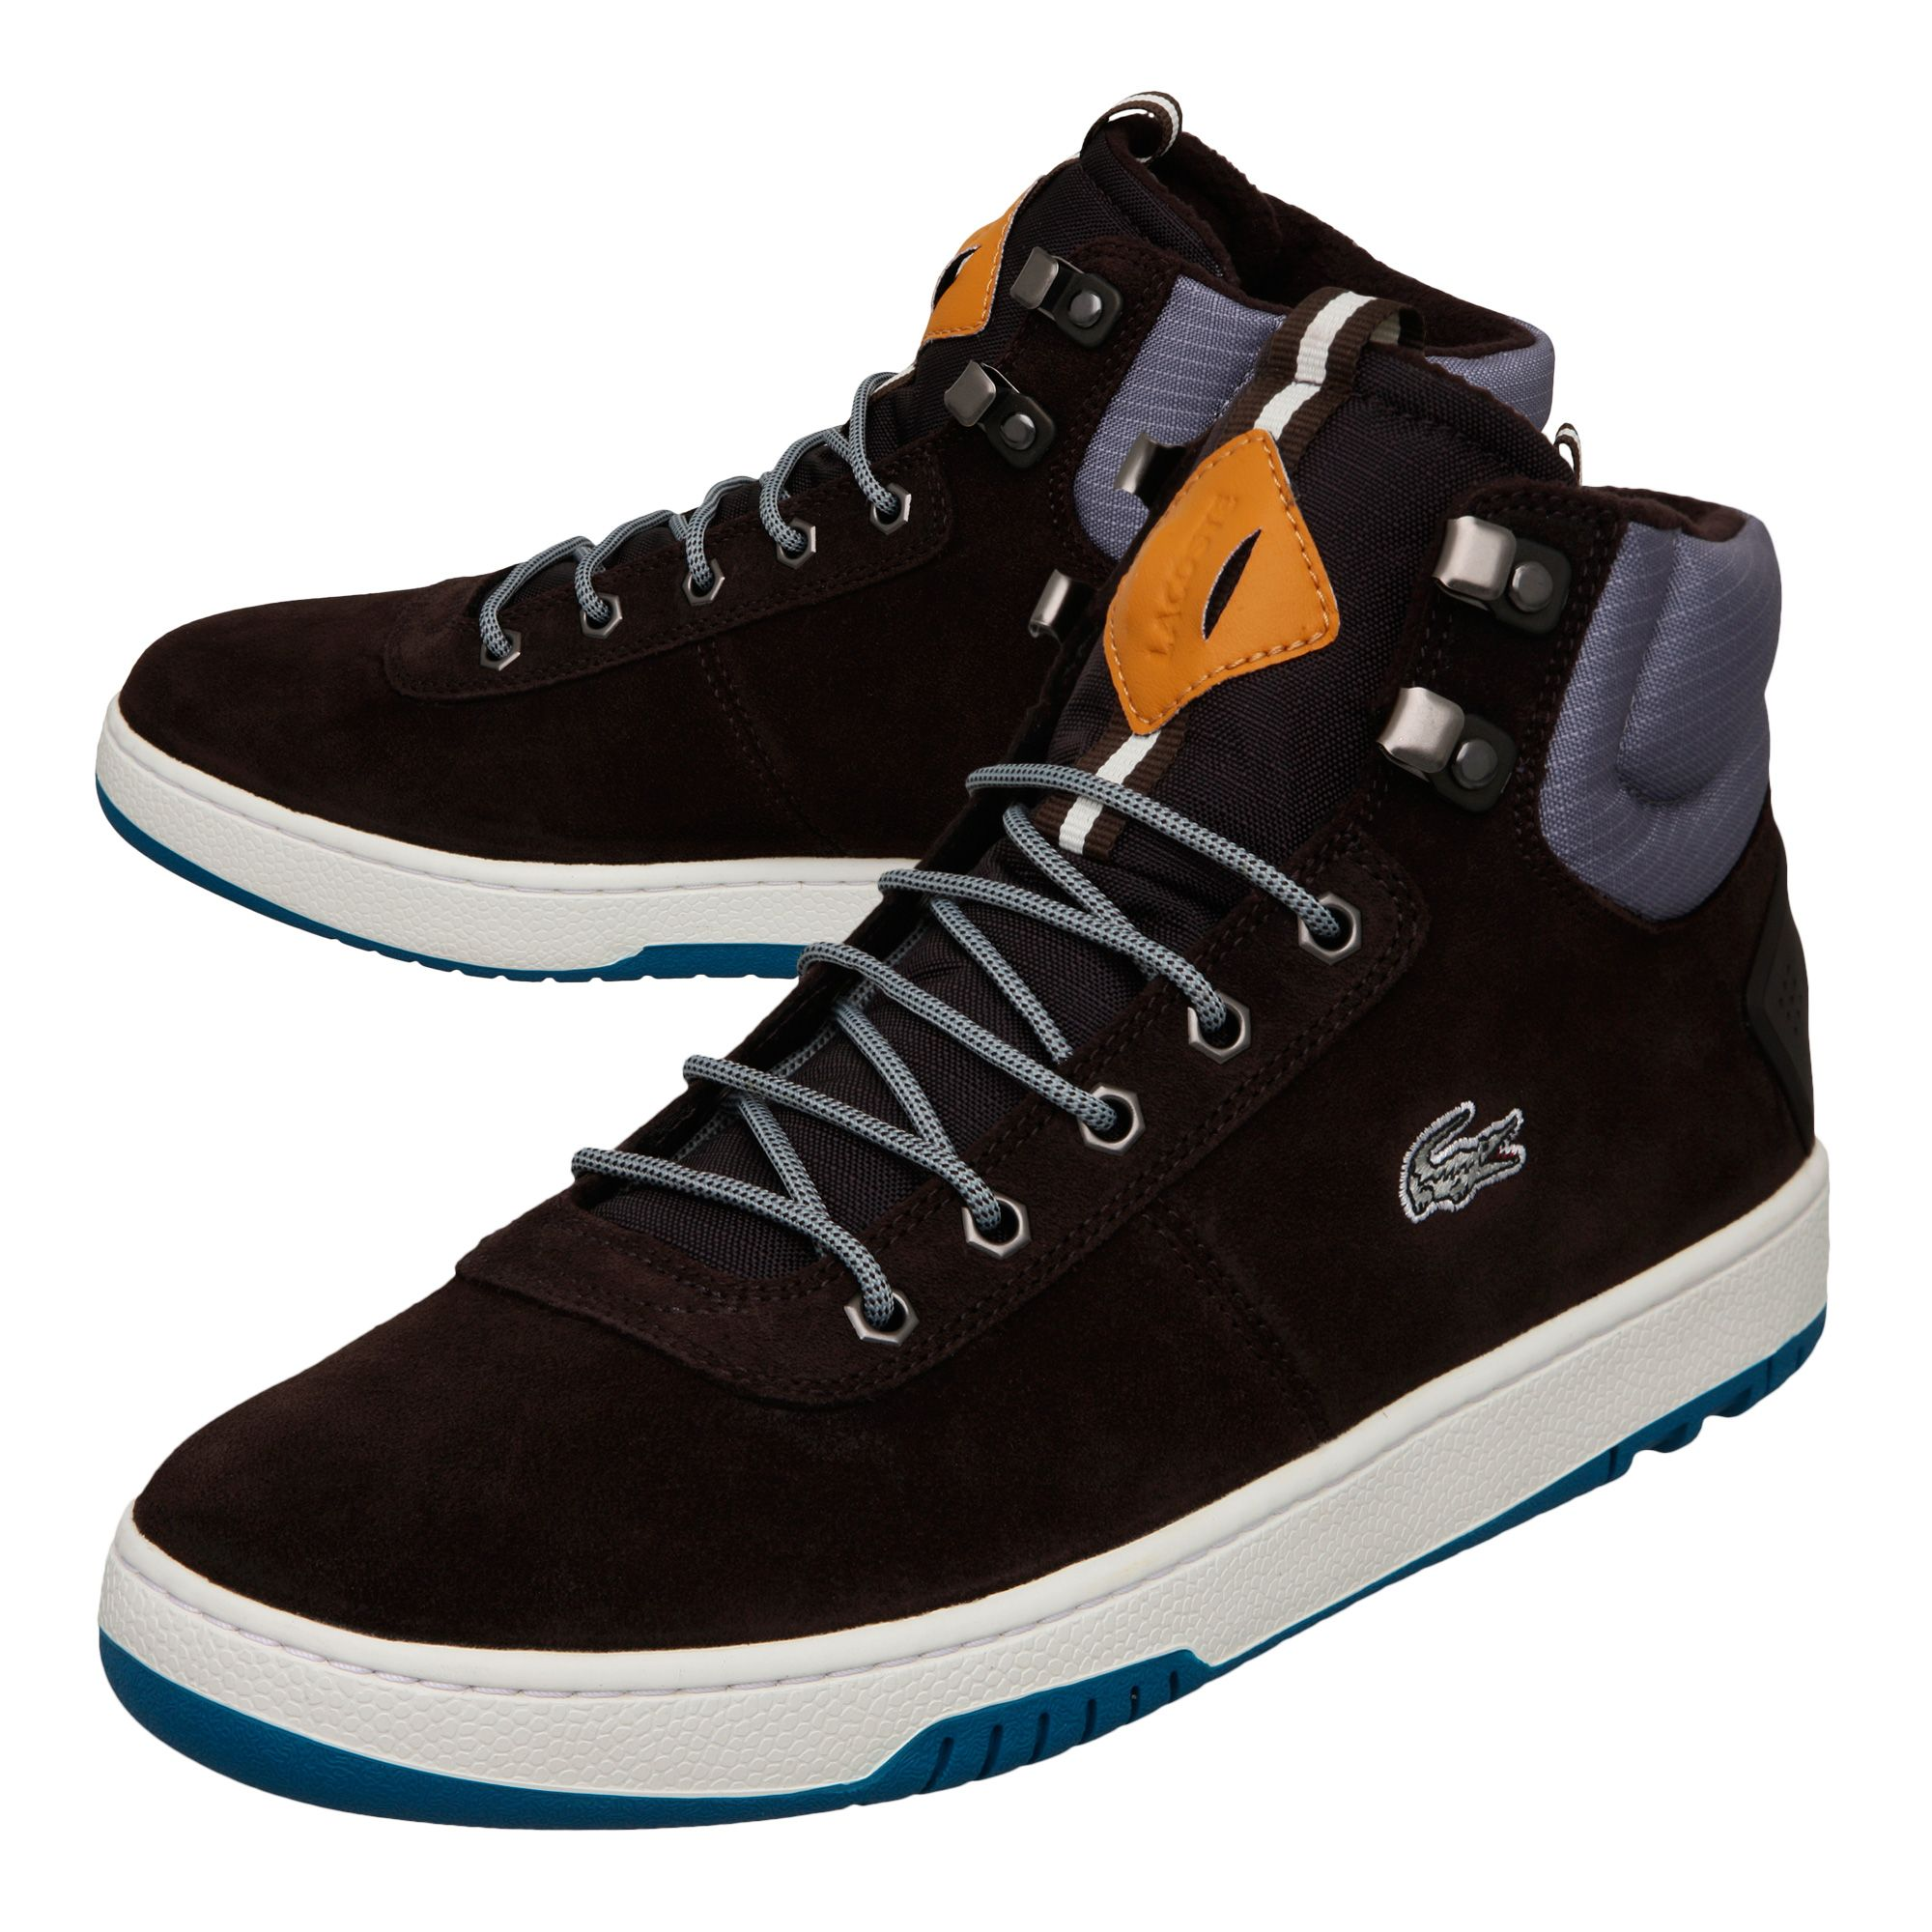 lyst lacoste raggi ci spm high top trainers in brown for men